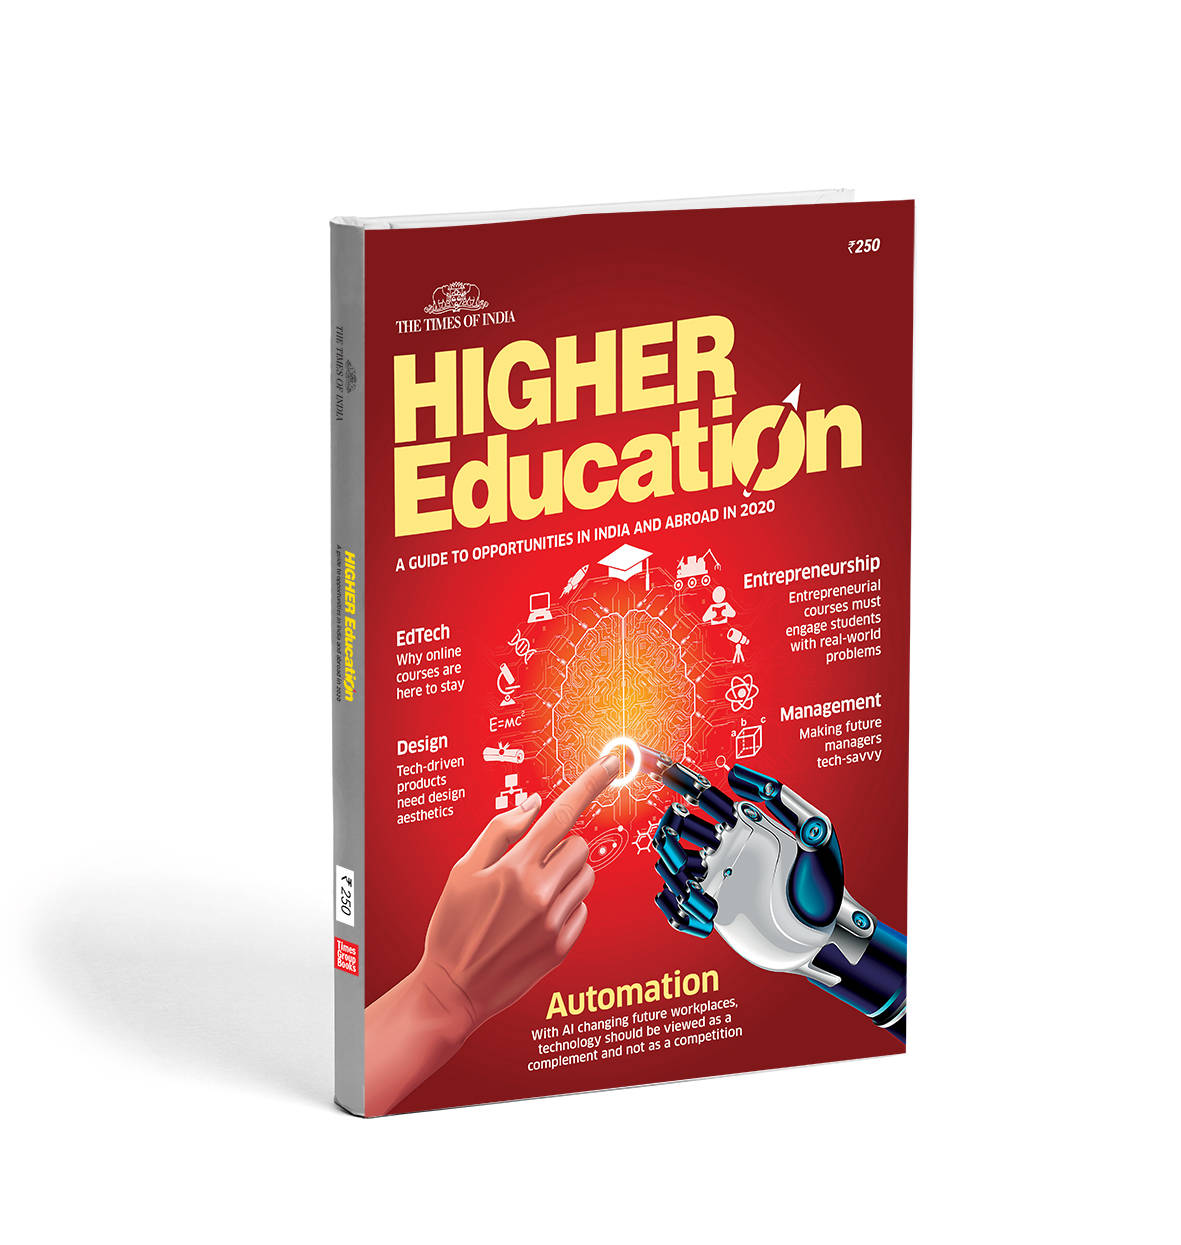 Times Higher Education 2020 available on the stand and online store